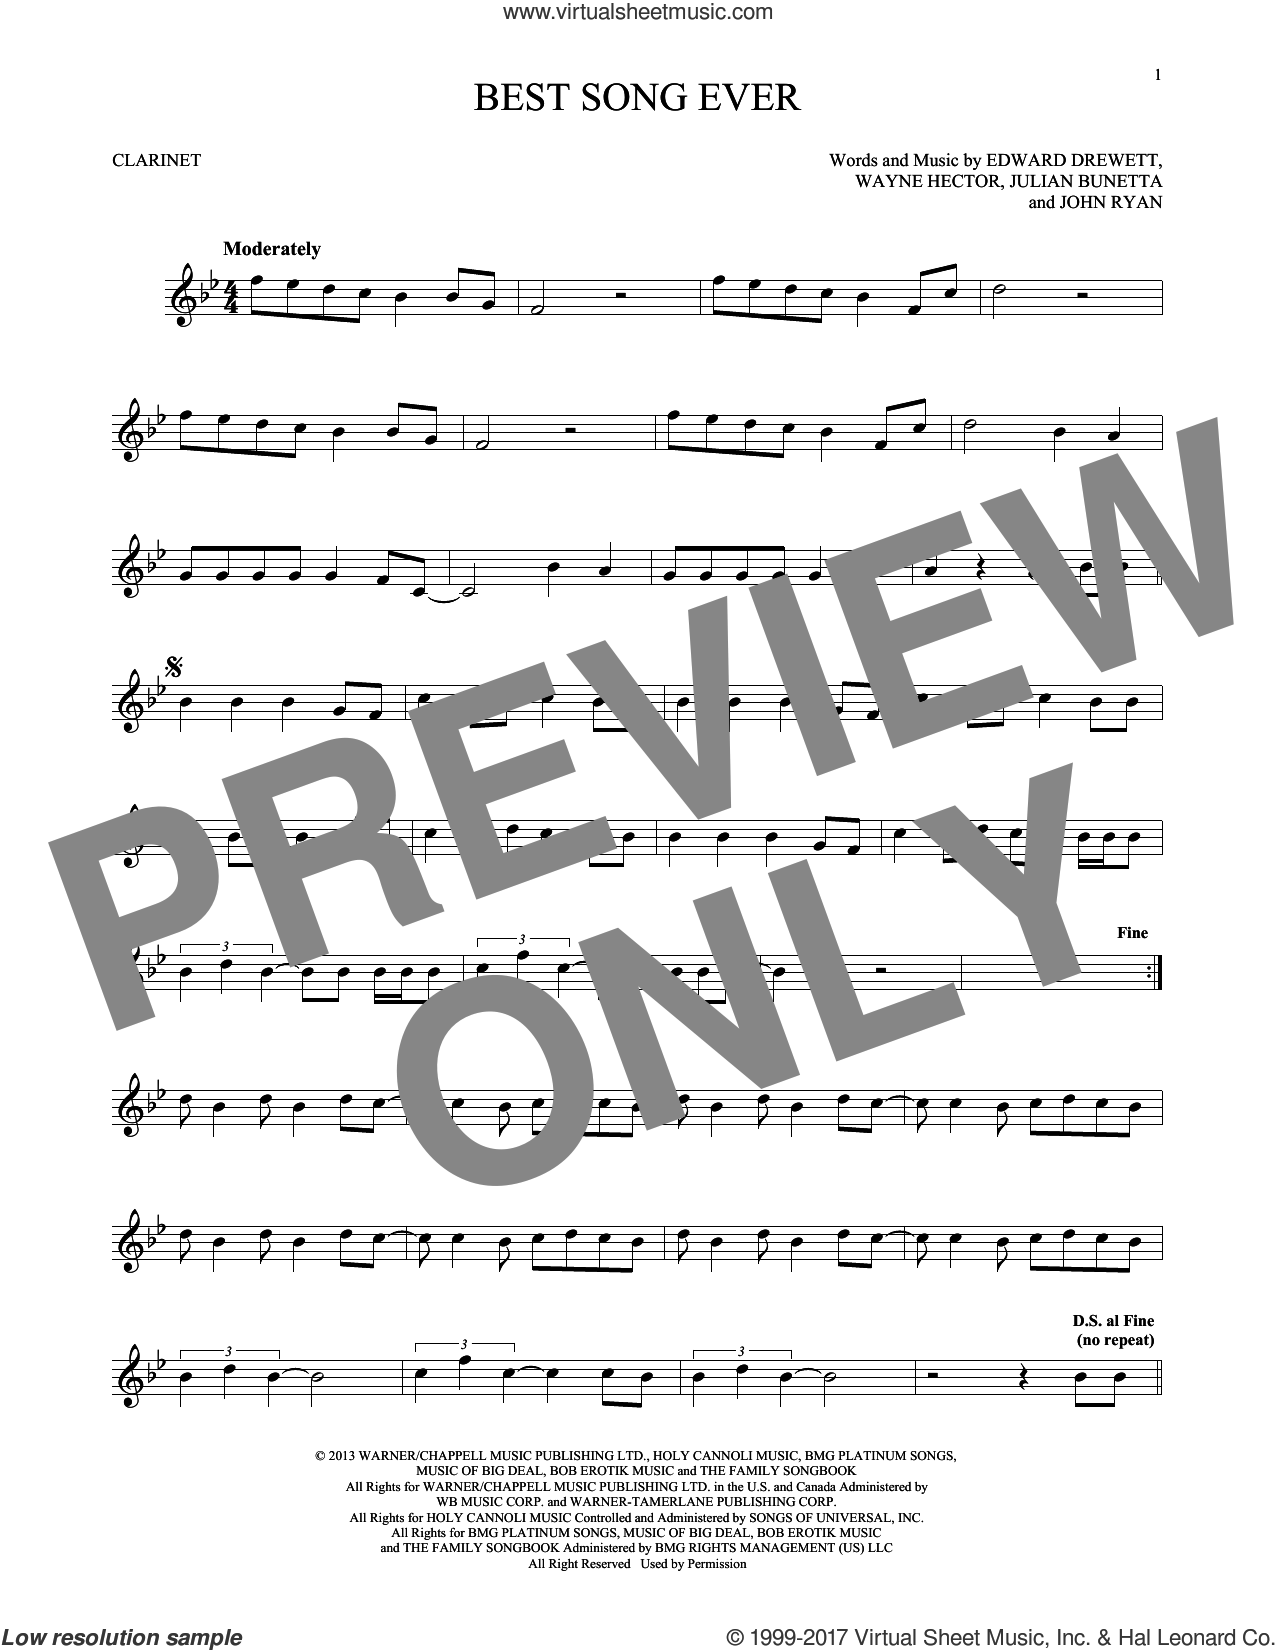 Best Song Ever sheet music for clarinet solo by One Direction, Edward Drewett, John Ryan, Julian Bunetta and Wayne Hector, intermediate skill level